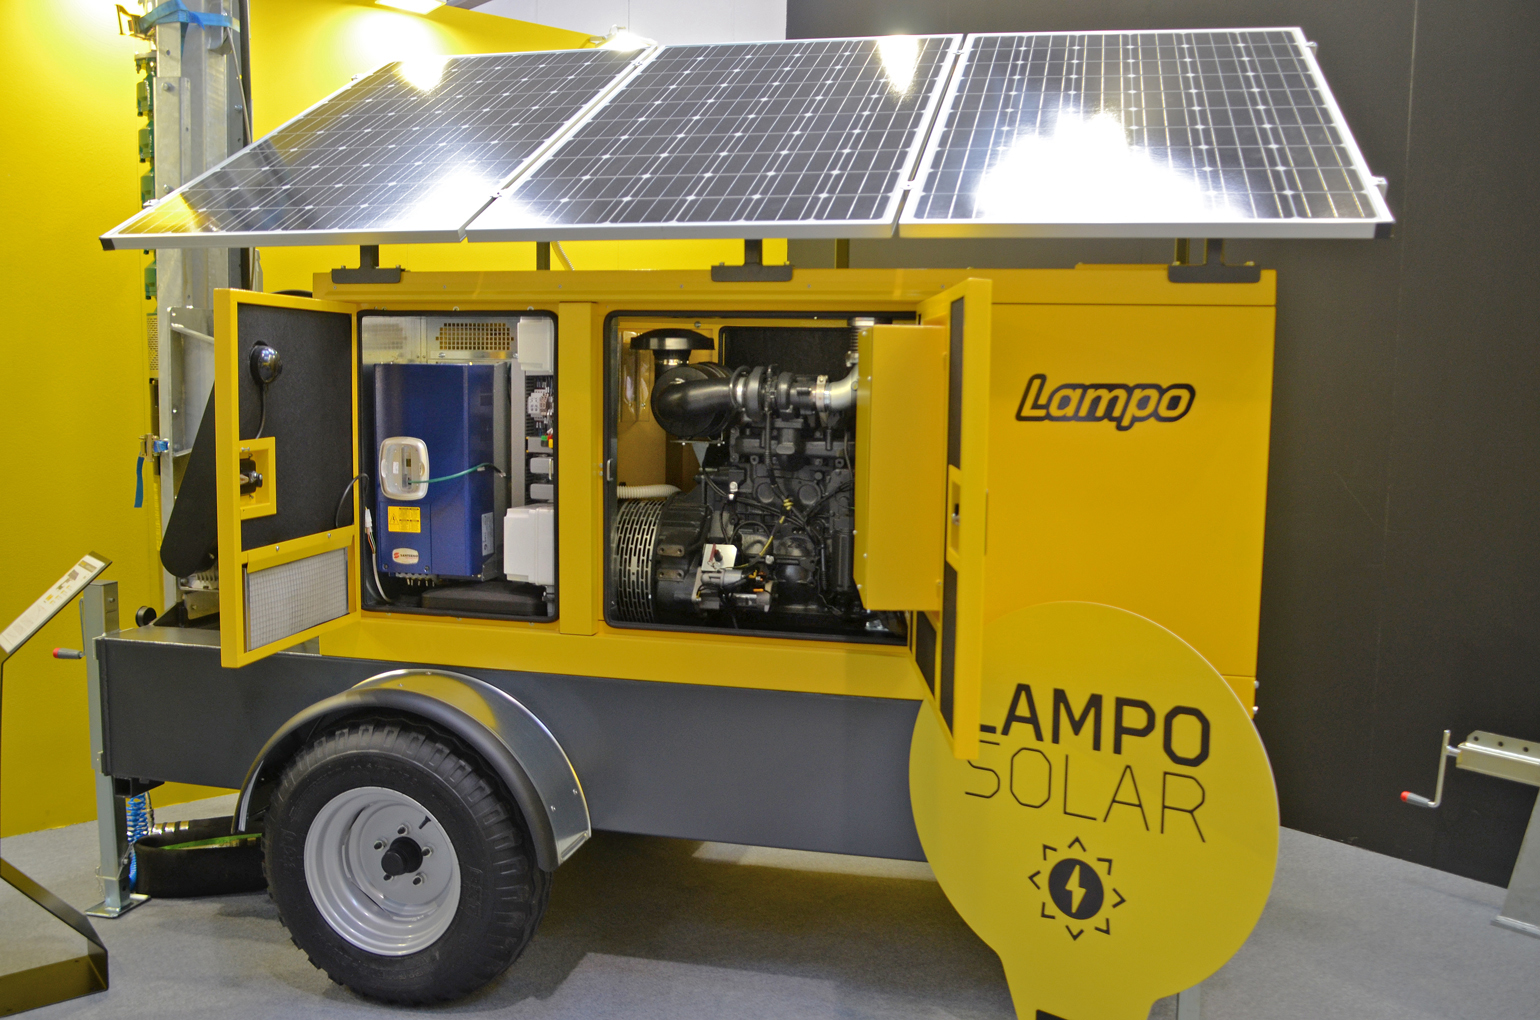 Euromacchine Lampo Green irrigation engine/generator with solar panels display at Agritechnica